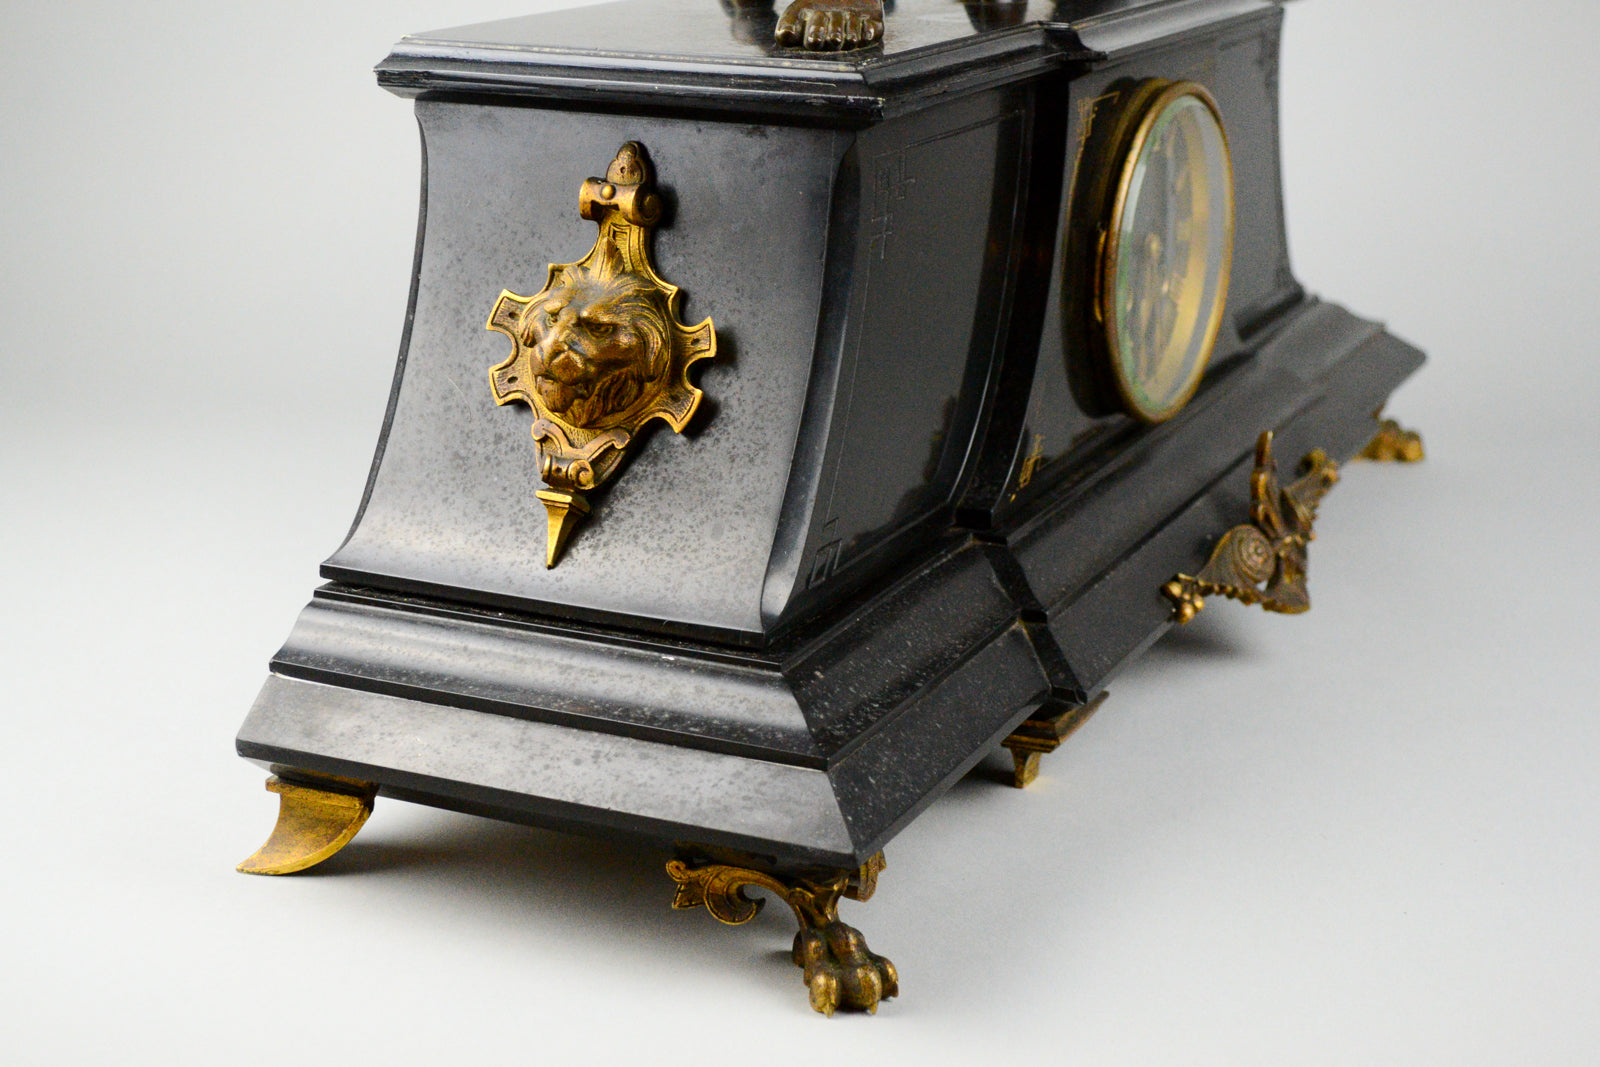 Antique French Clock with Bronze Figure of Virgile